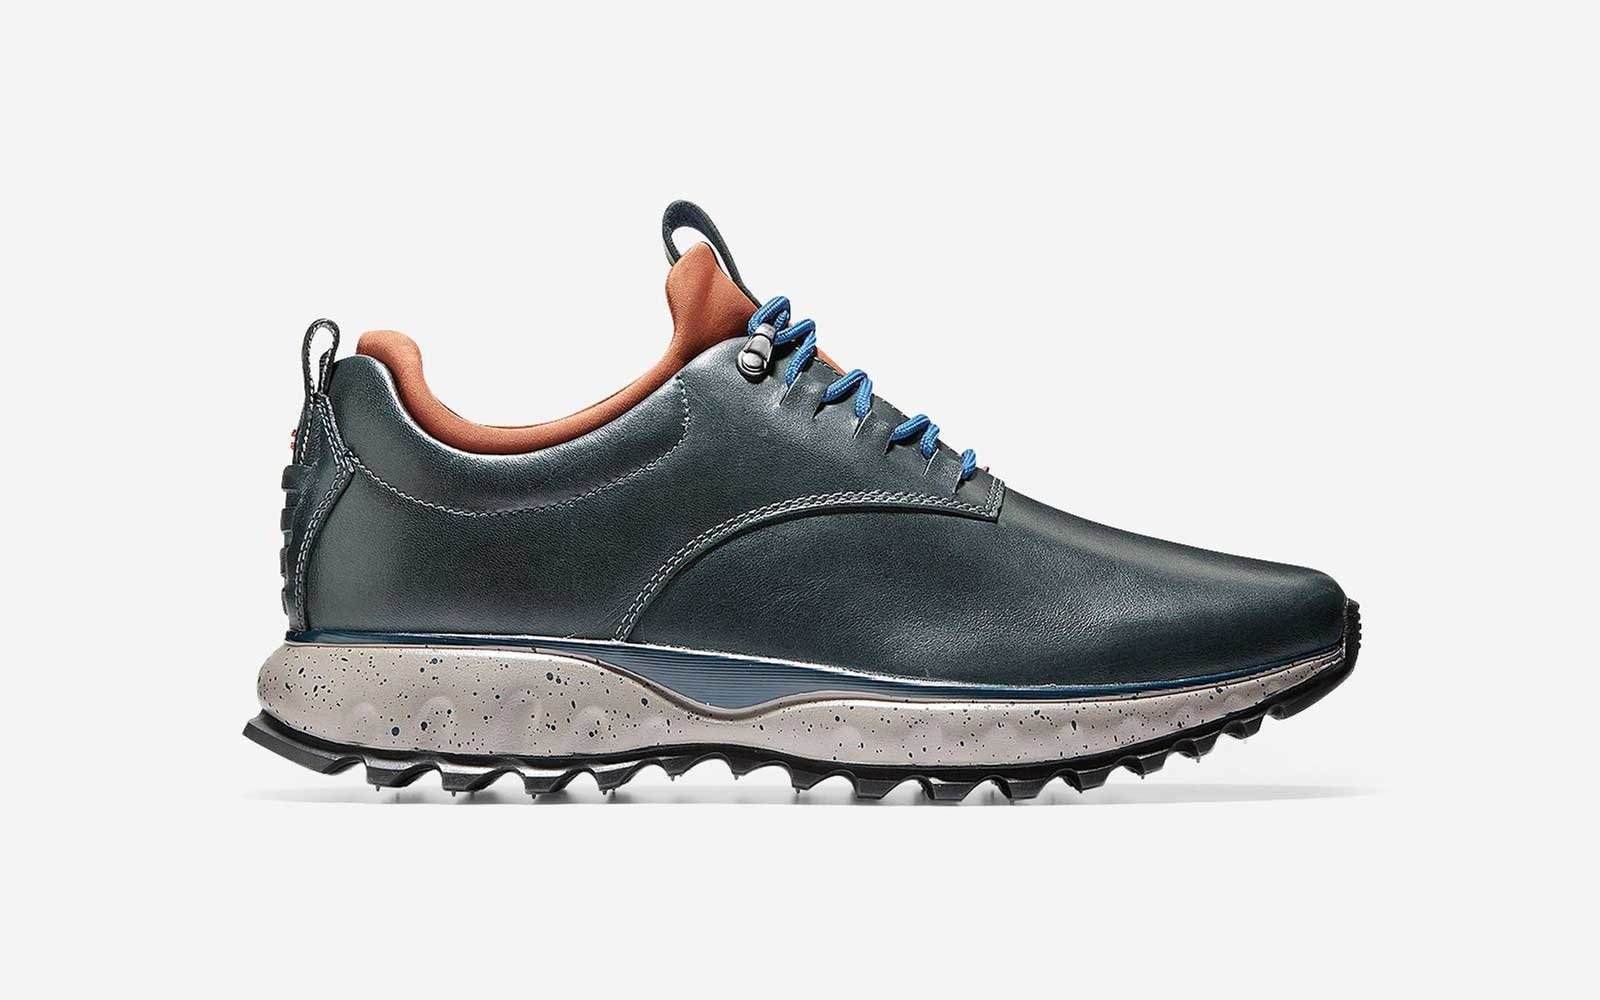 a4f211c8c Cole Haan Men s Zerogrand All-terrain Waterproof Sneaker. Cole Haan  Waterproof Boots